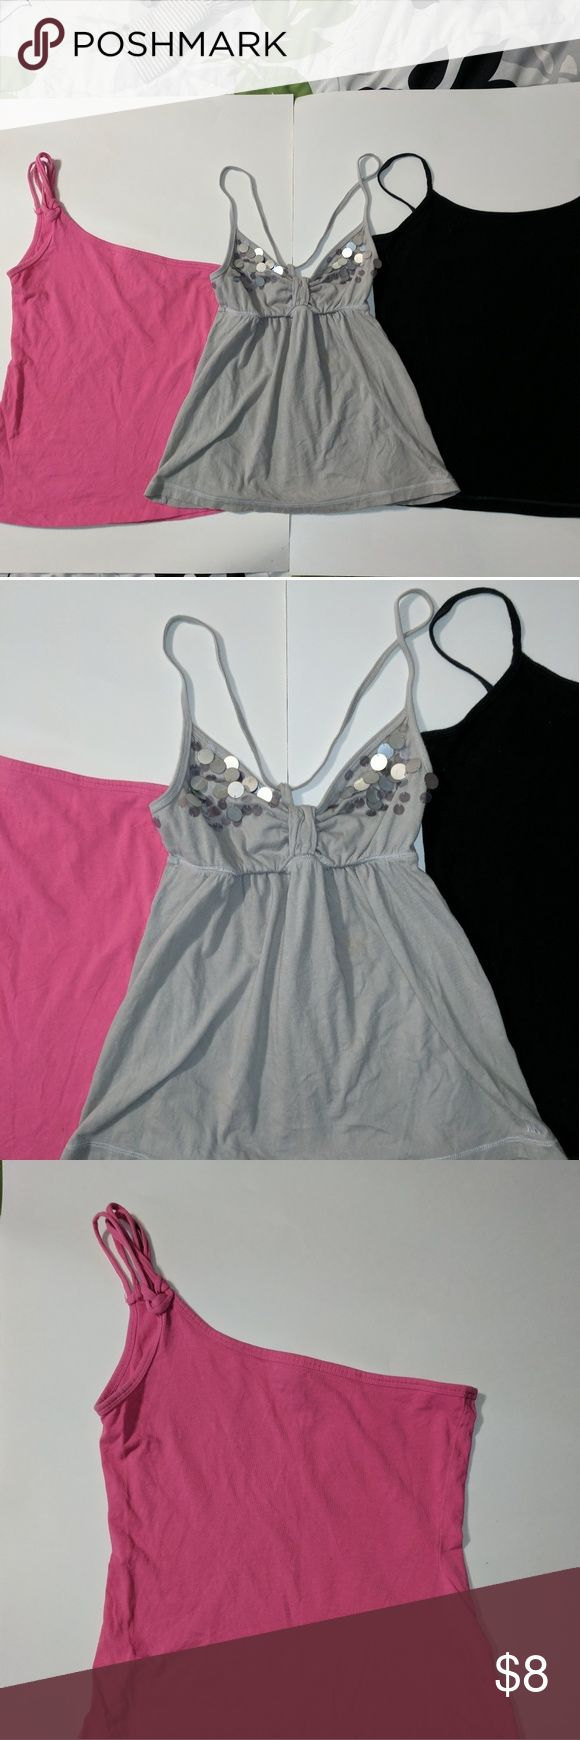 Set of Three spaghetti strap tanks Size M This is for set of three summer tops for ladies all are size mediums.  Pink one shoulder strap is Wet Seal brand Gray silver sequins string top is Abercrombie New York brand Solid black tank is Aeropostale favorite Cami brand All are in good condition see photos for detail comment with any questions. Aeropostale Abercrombie Wet Seal Tops Tank Tops